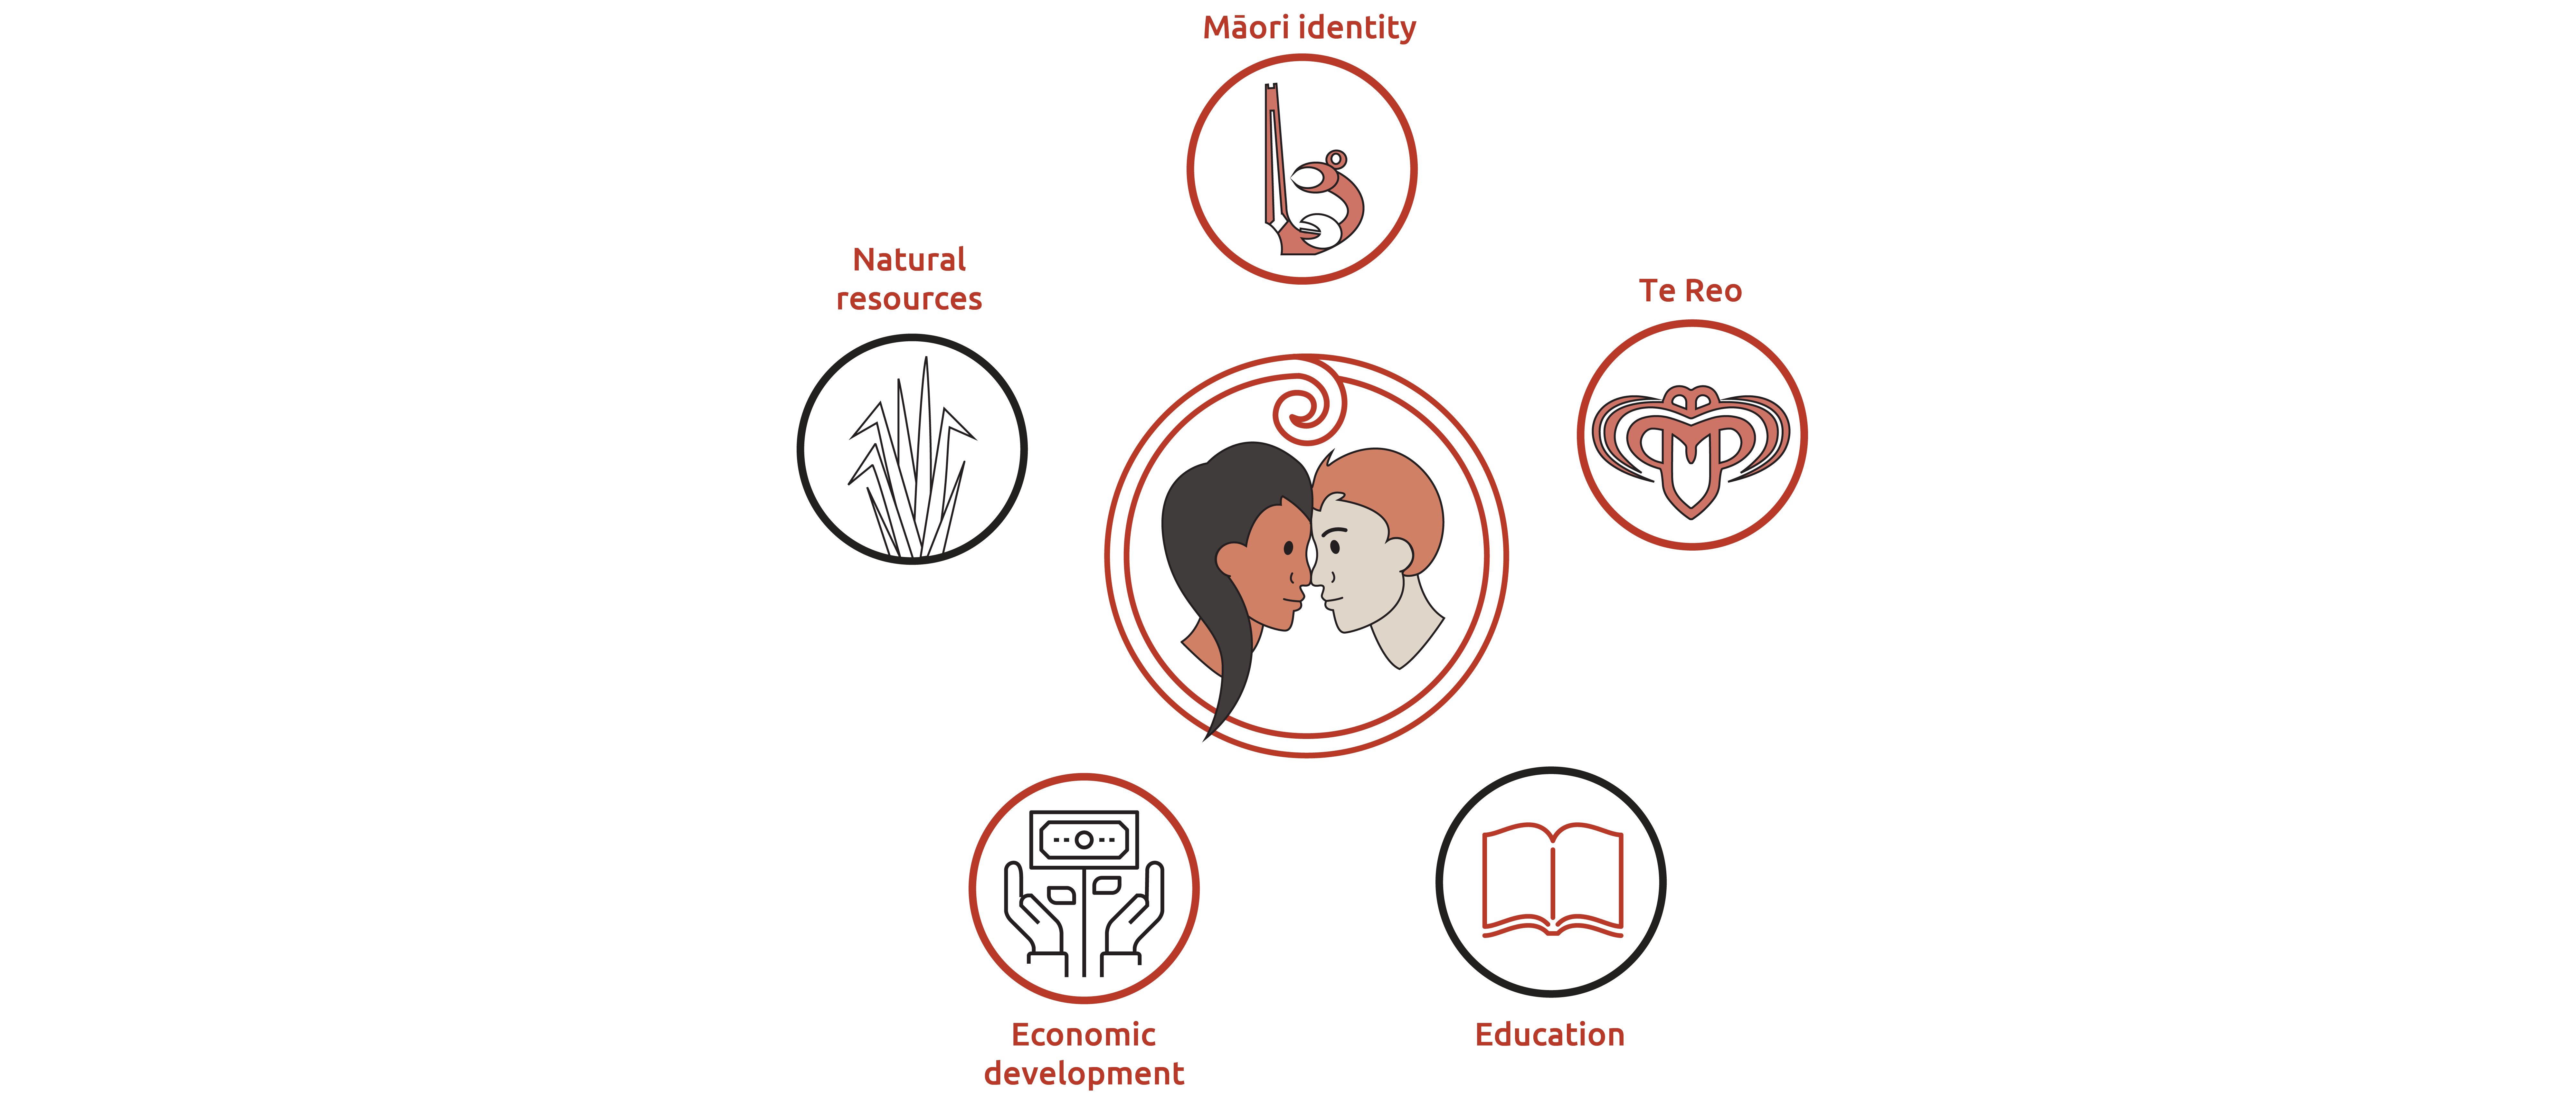 An image showing that a partnership approach is required to achieving mana whenua priorities of a strong Māori identity, economic development, valuing natural resources, education and te reo.